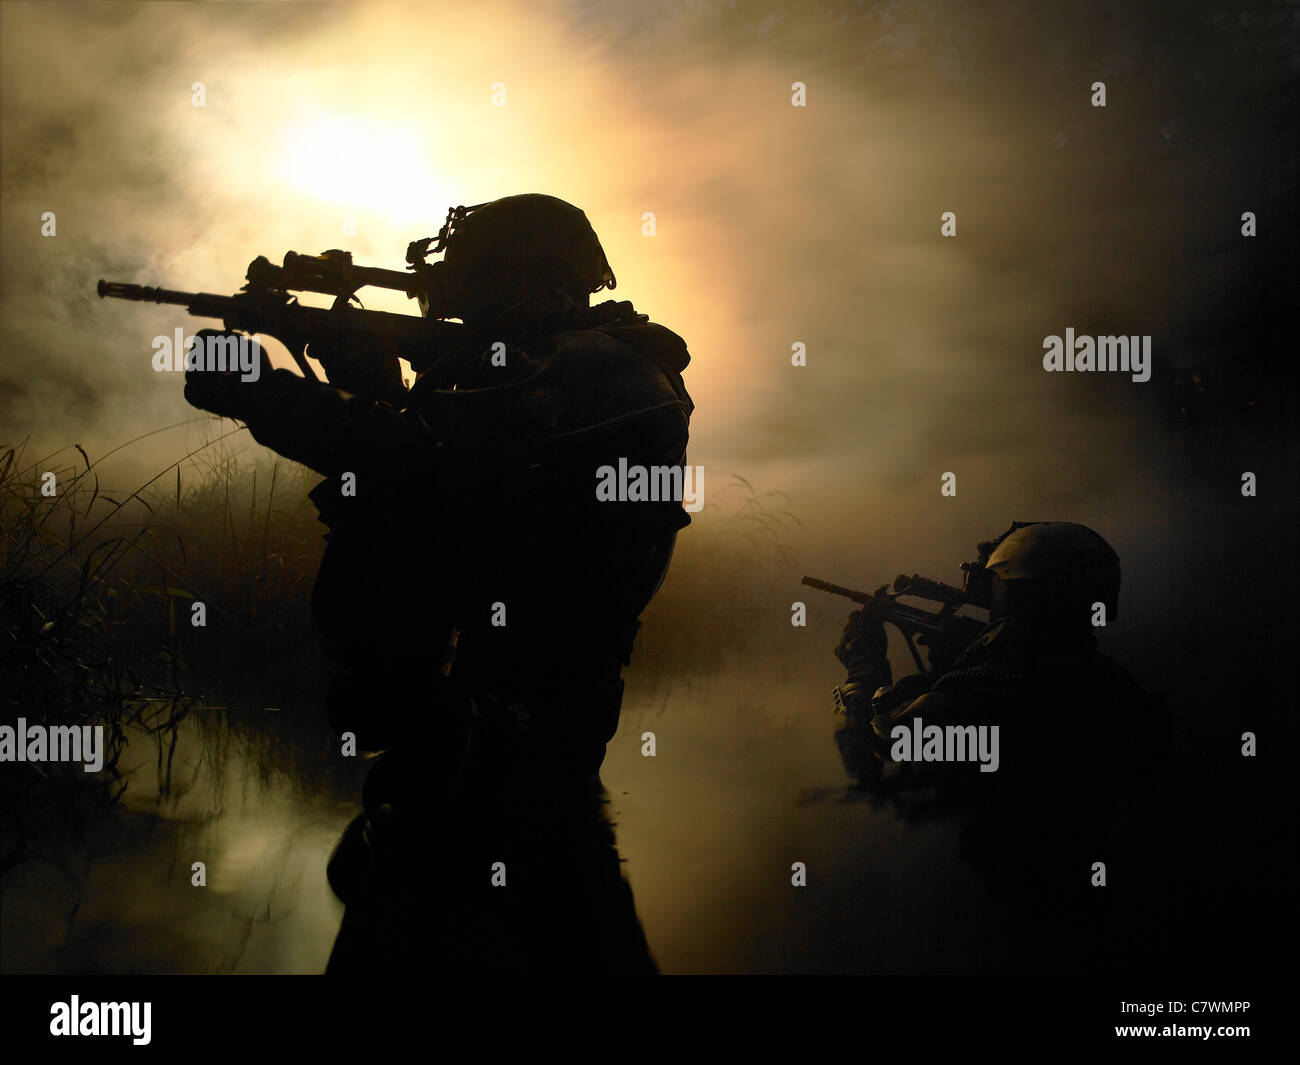 Special Operations Forces combat divers transit the waters armed with Steyr AUG assault rifles. - Stock Image